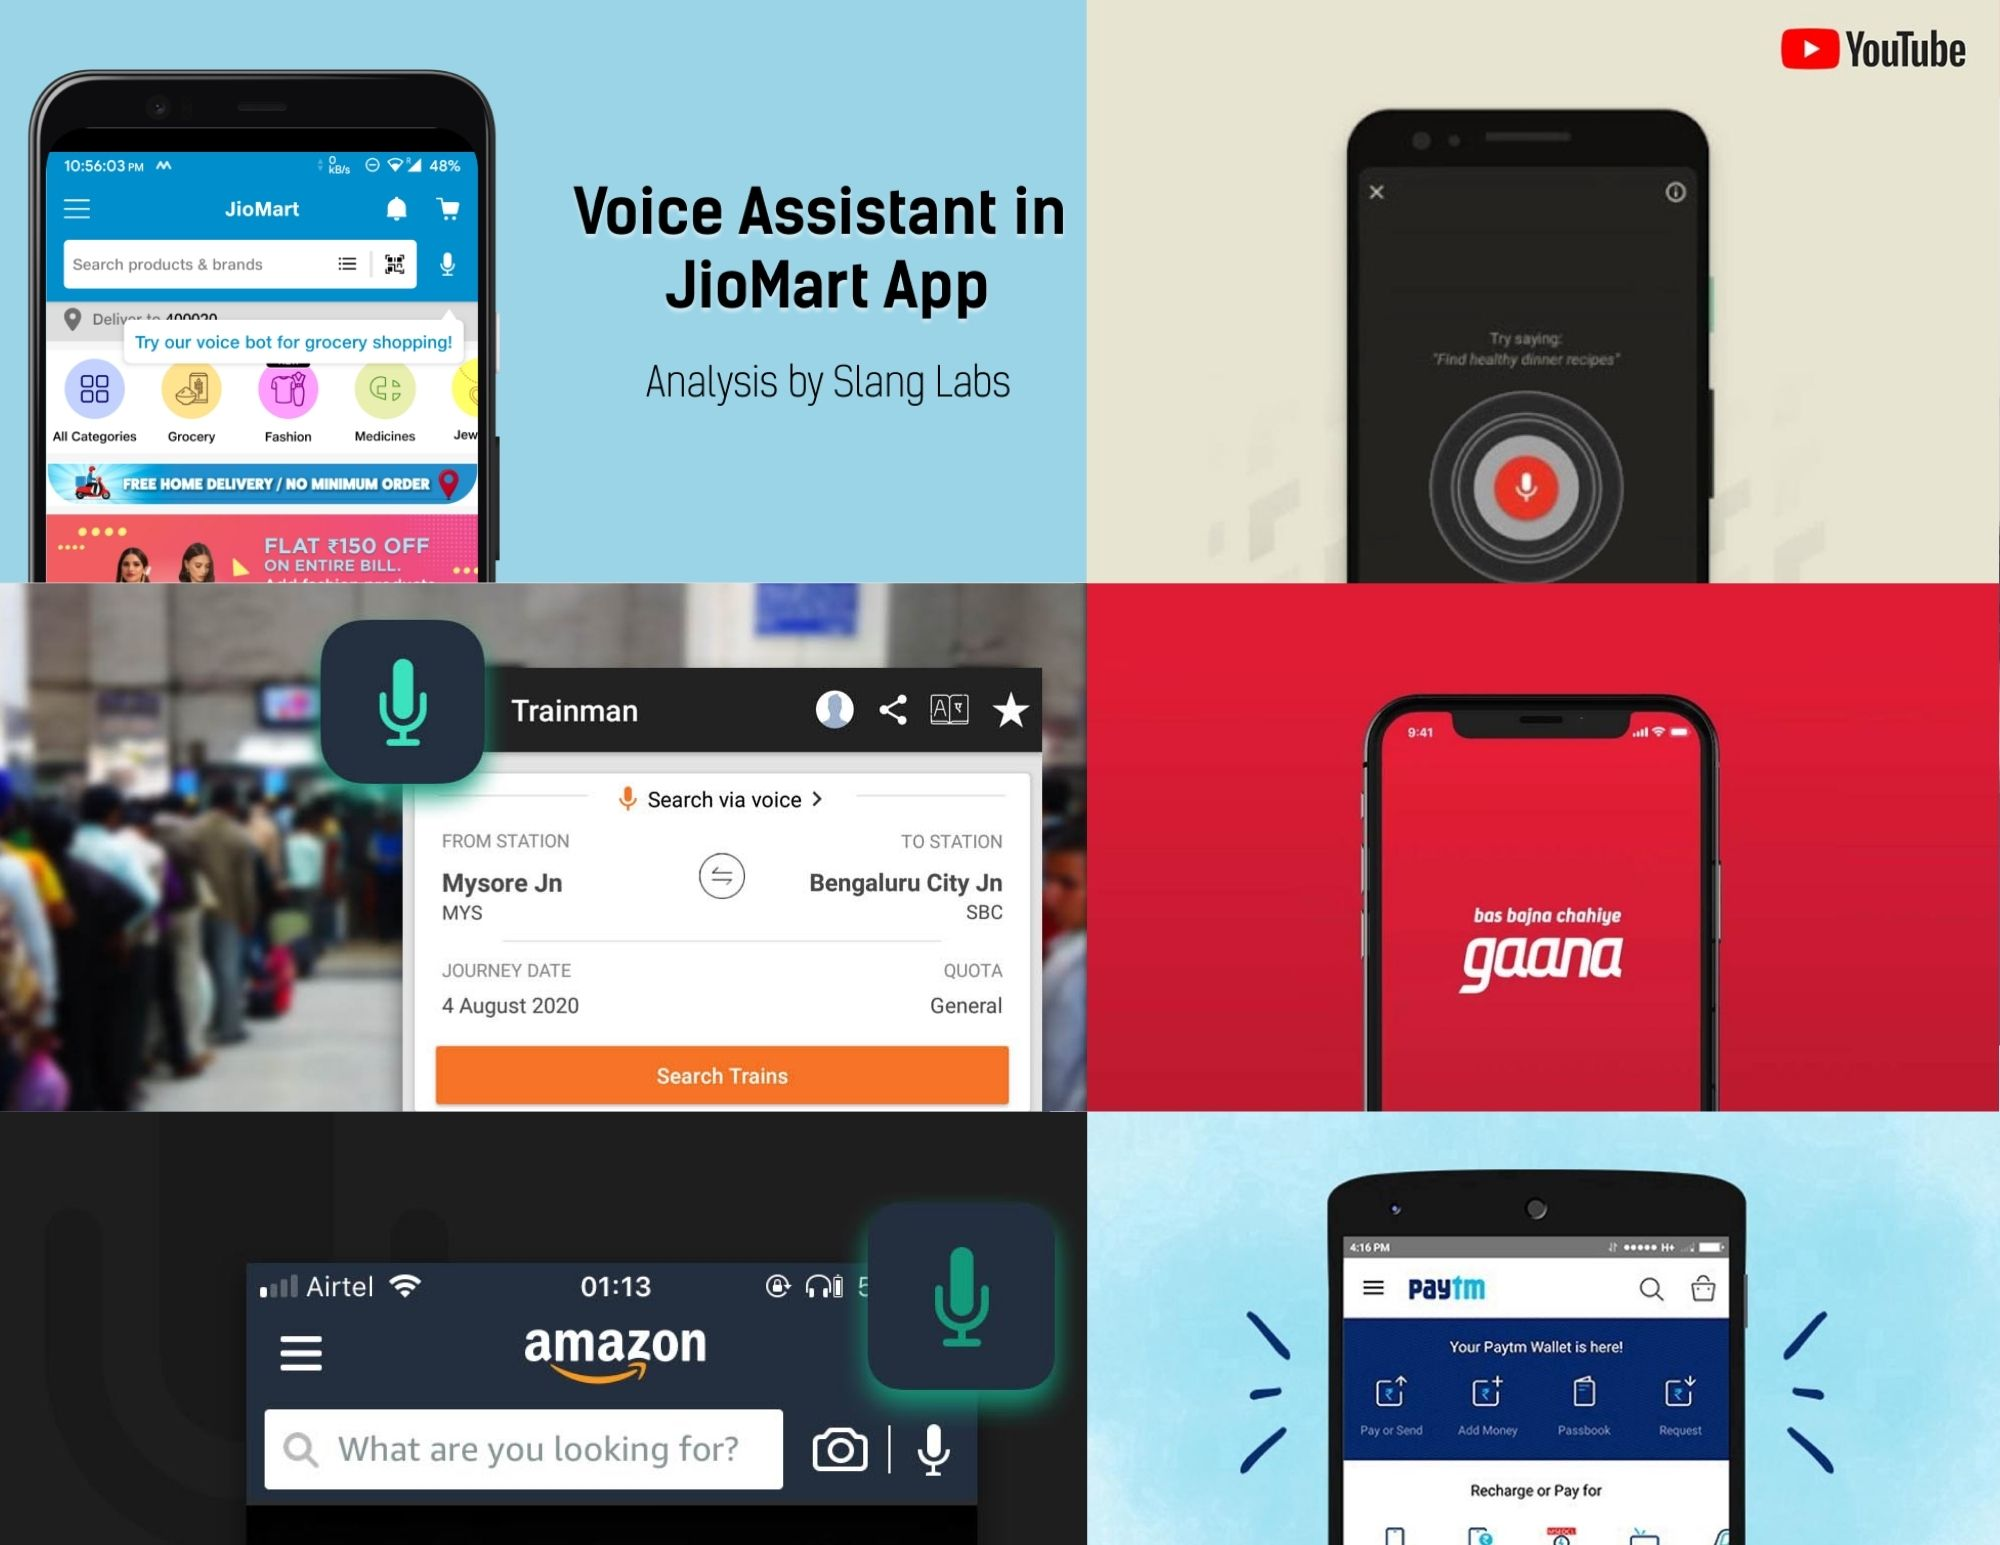 Voice Assistants in various apps